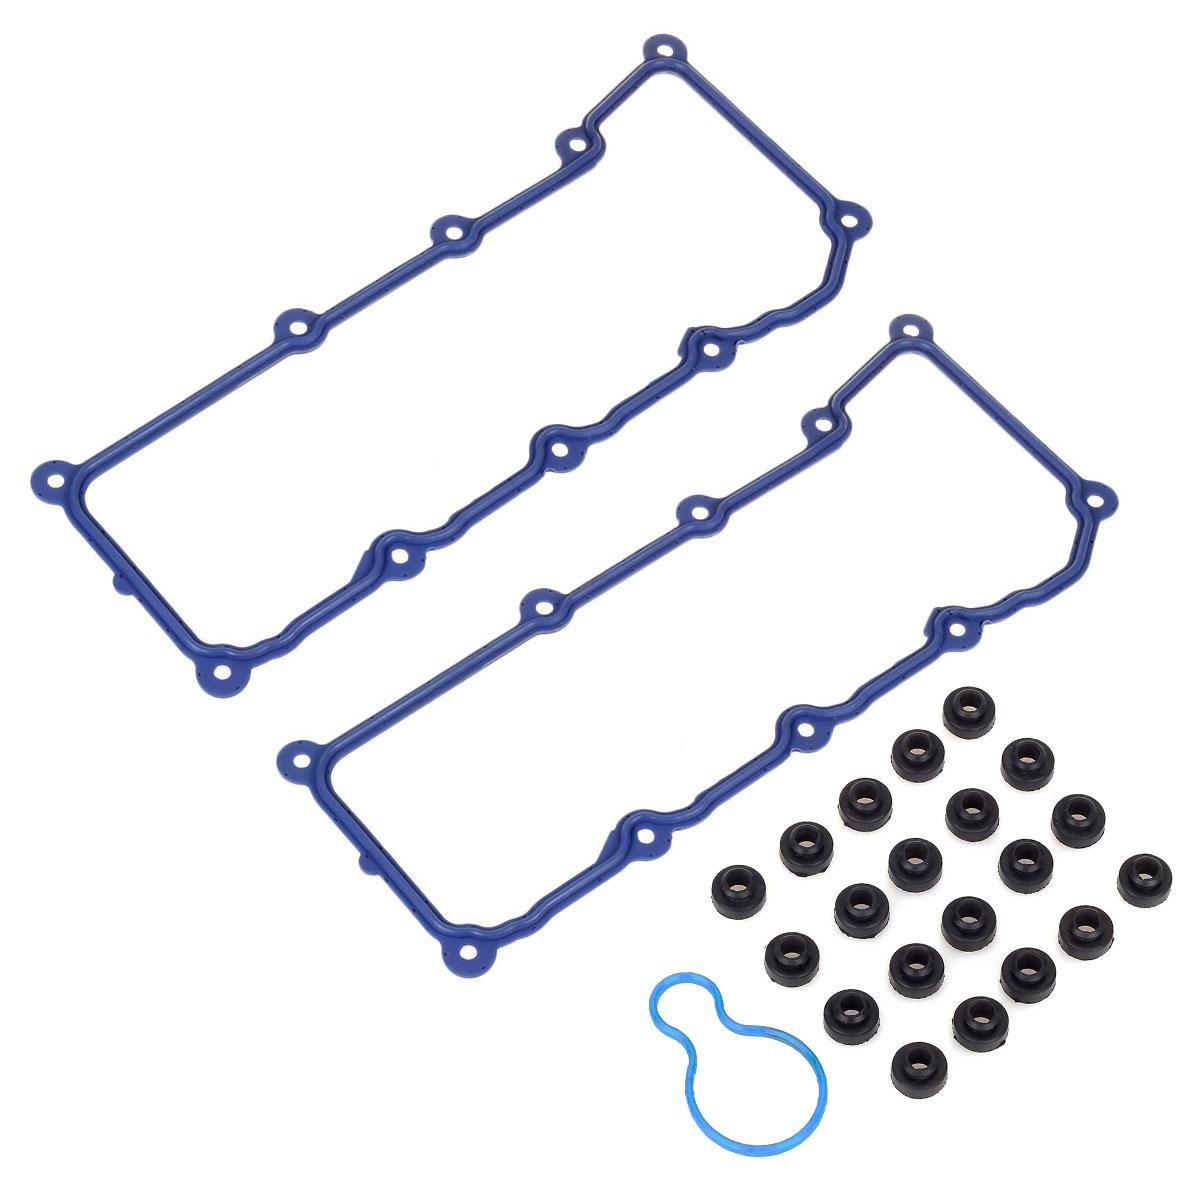 Fits For Vin Code K 2002 2005 Dodge Jeep Liberty 37l V6 Engine Diagram As Well Cherokee Water Pump Cylinder Valve Cover Gasket Oe Repl Automotive